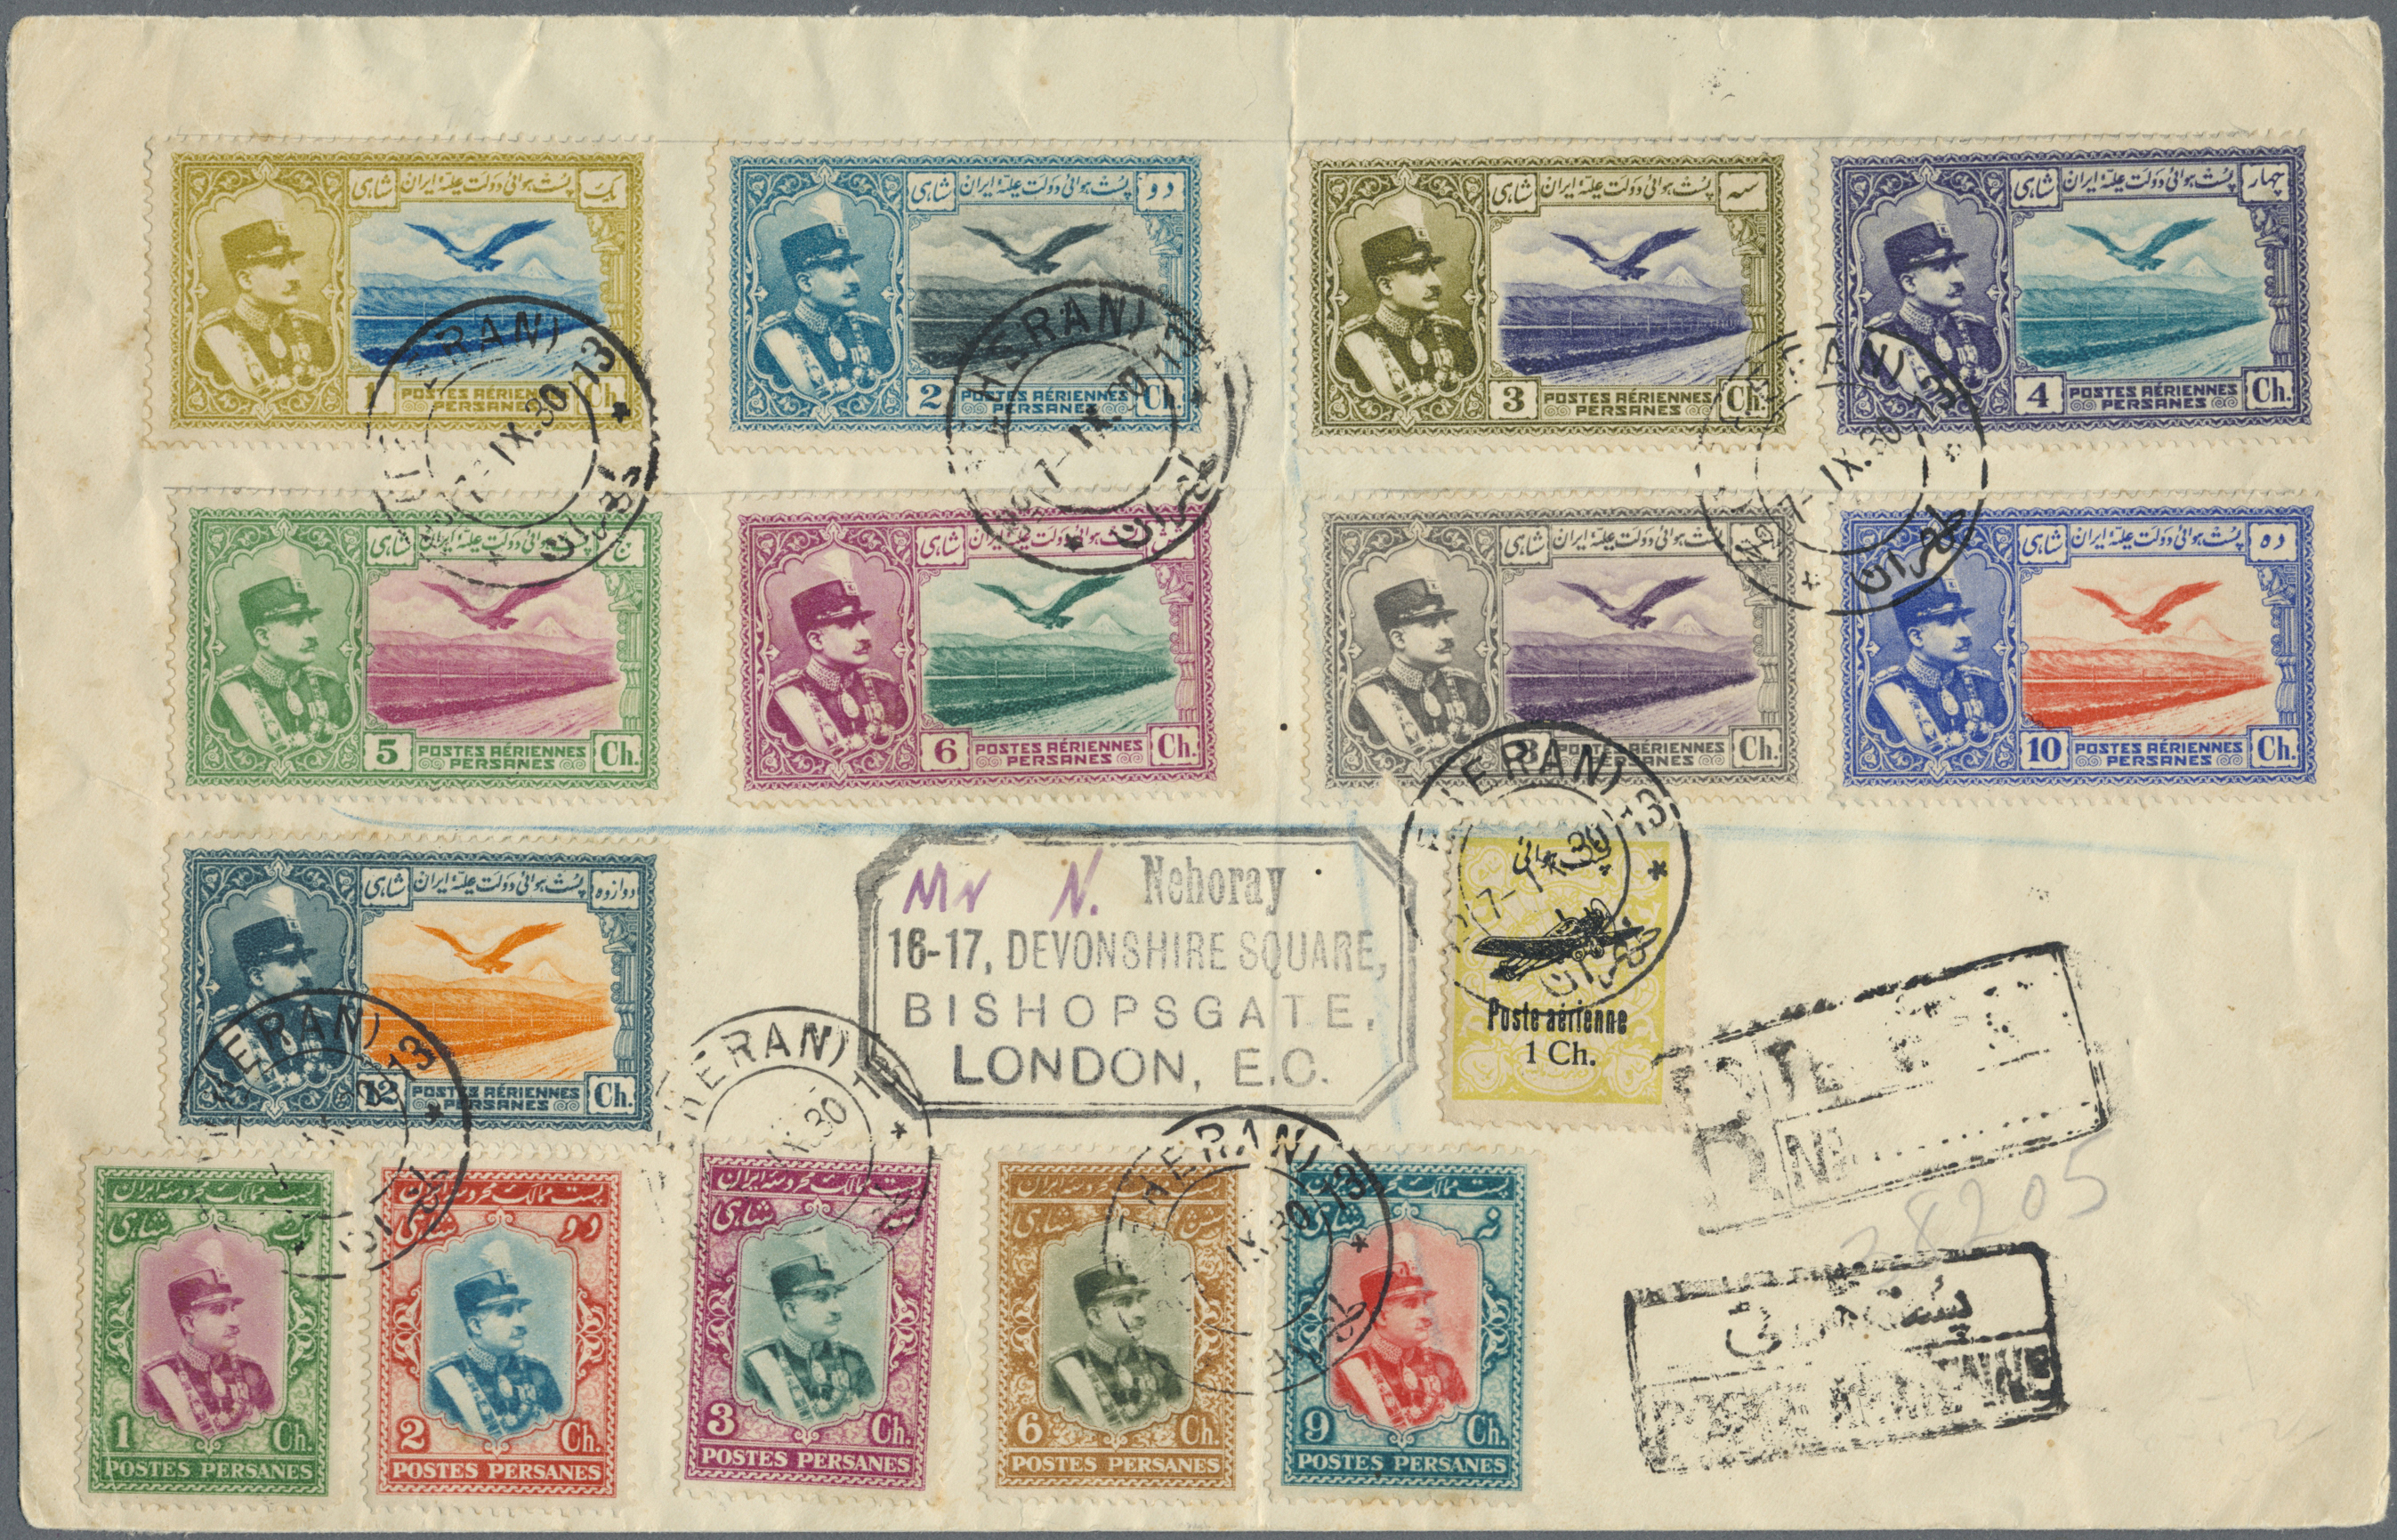 Lot 34521 - iran  -  Auktionshaus Christoph Gärtner GmbH & Co. KG Collections Germany,  Collections Supplement, Surprise boxes #39 Day 7